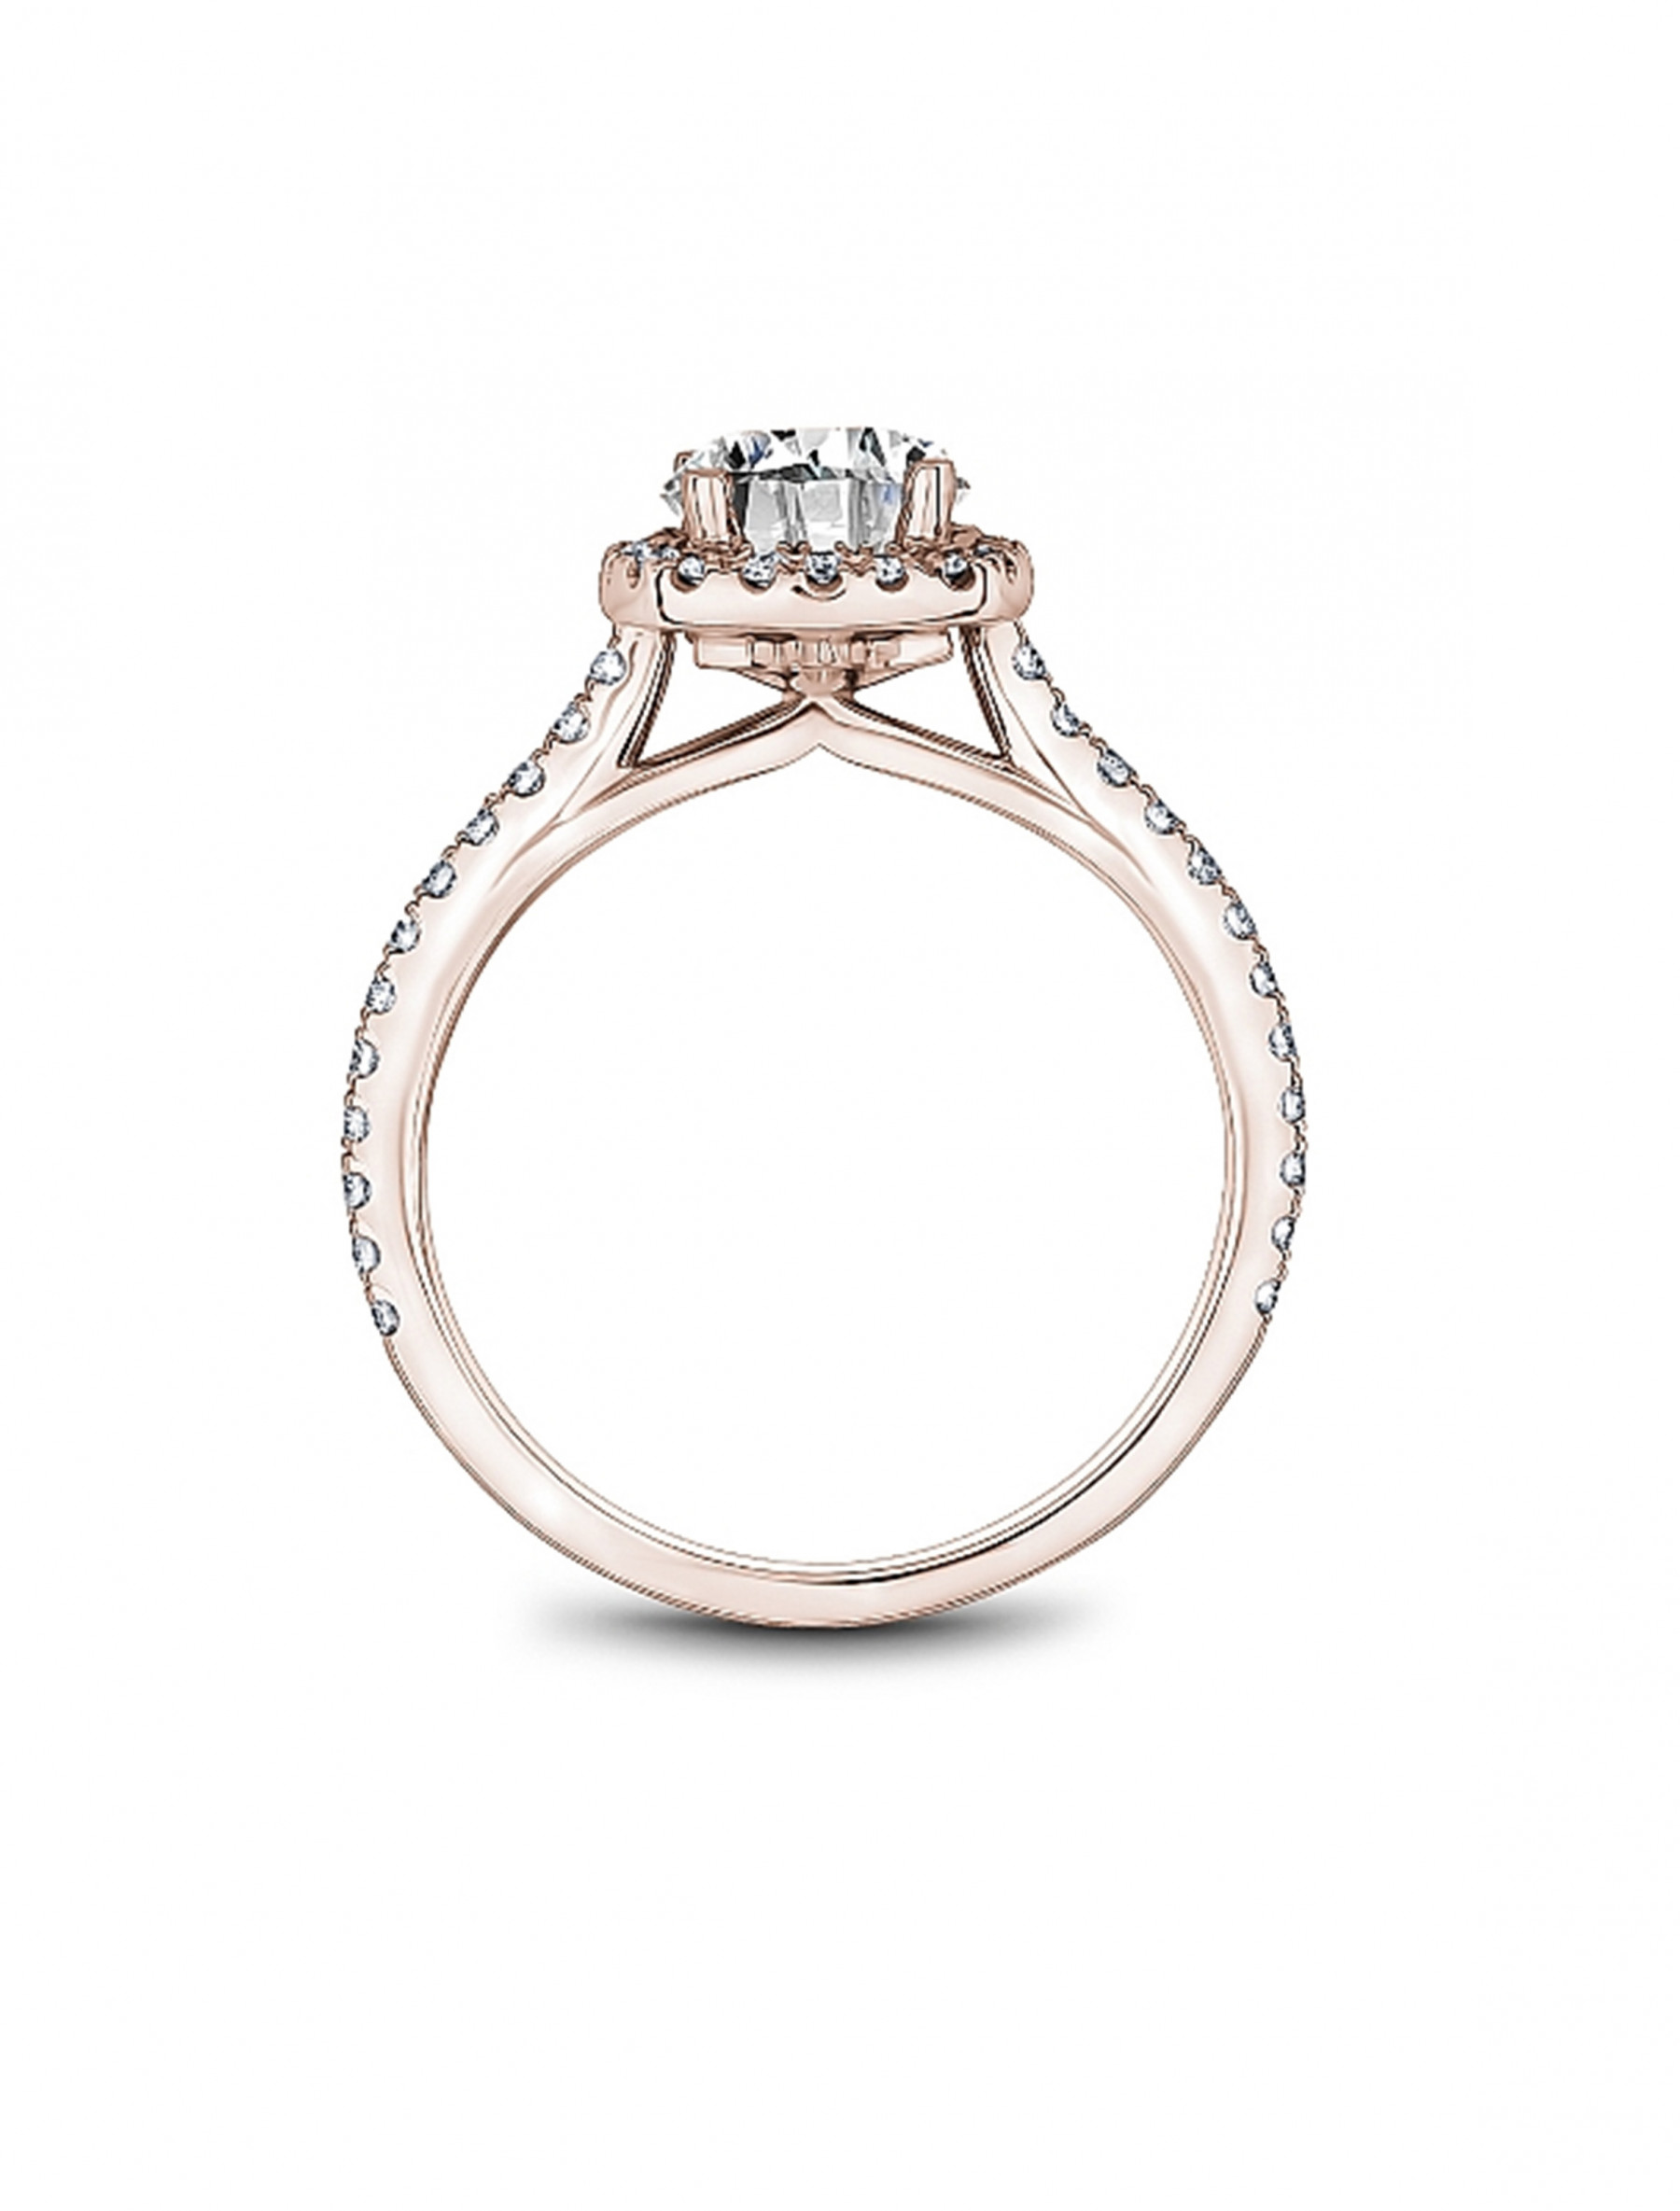 Noam Carver Round Cushion Halo Diamond Engagement Ring Setting in 18K Rose Gold side view